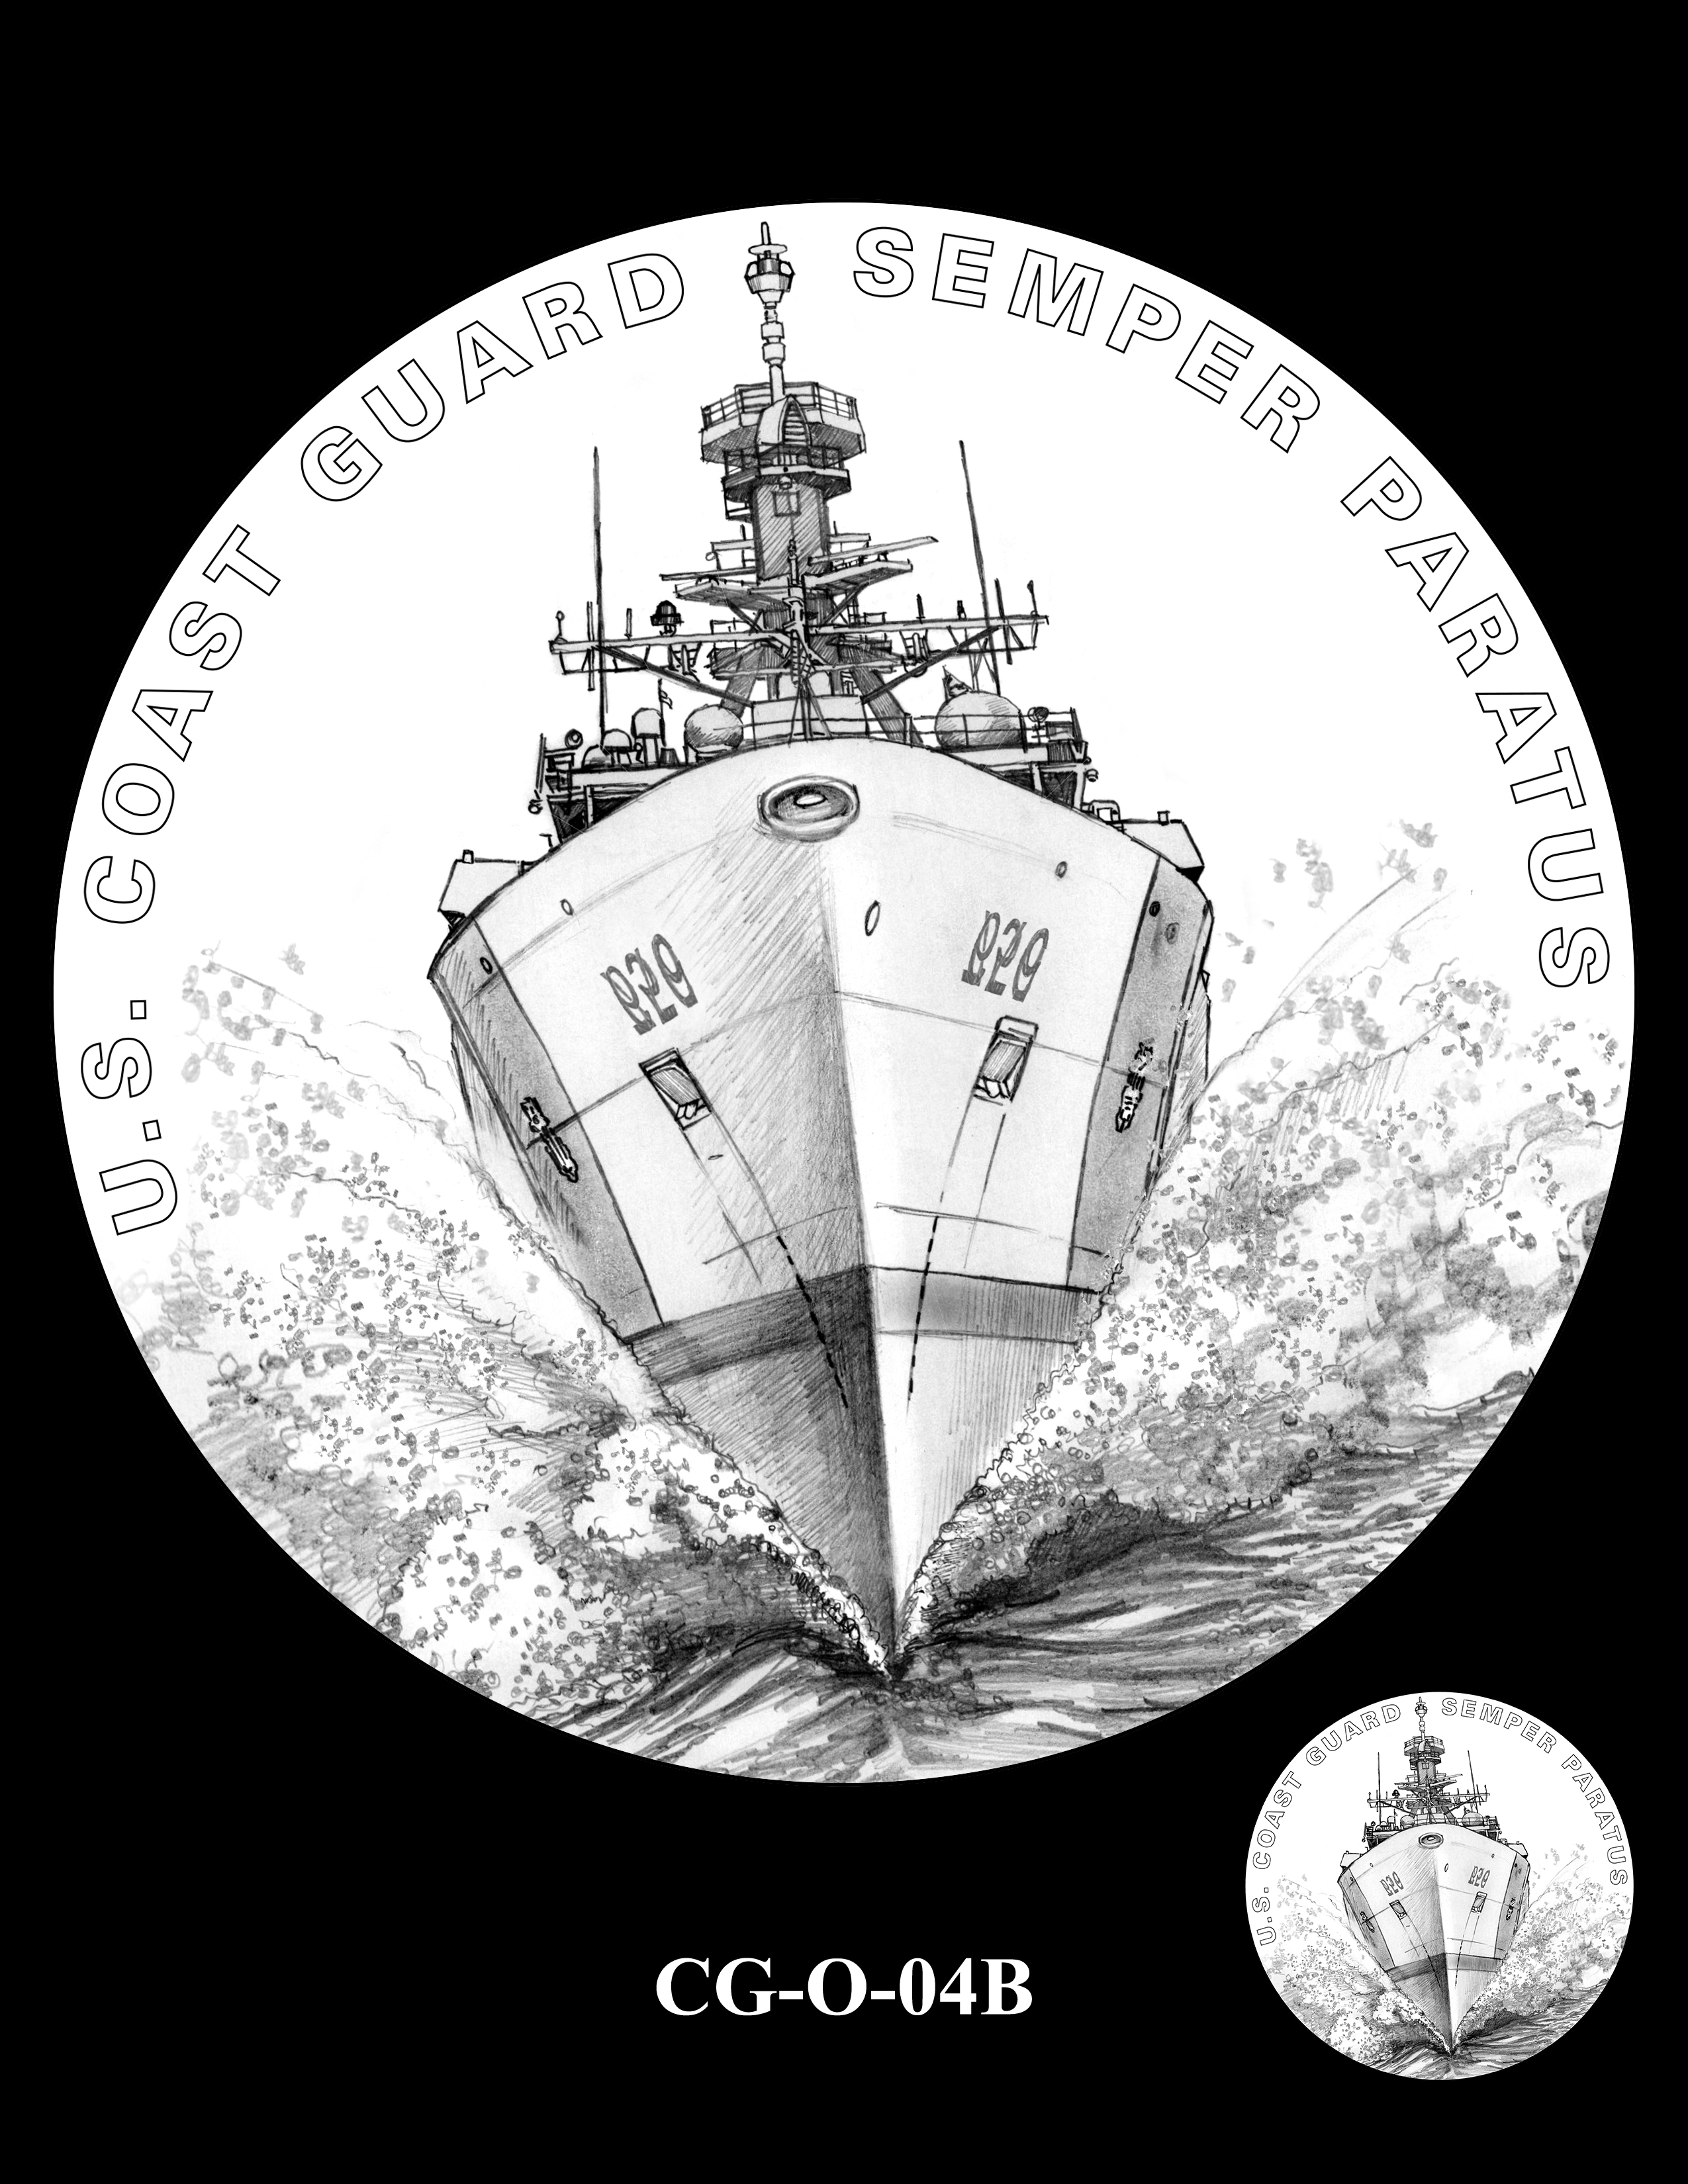 CG-O-04B -- Armed Forces Medal - Coast Guard